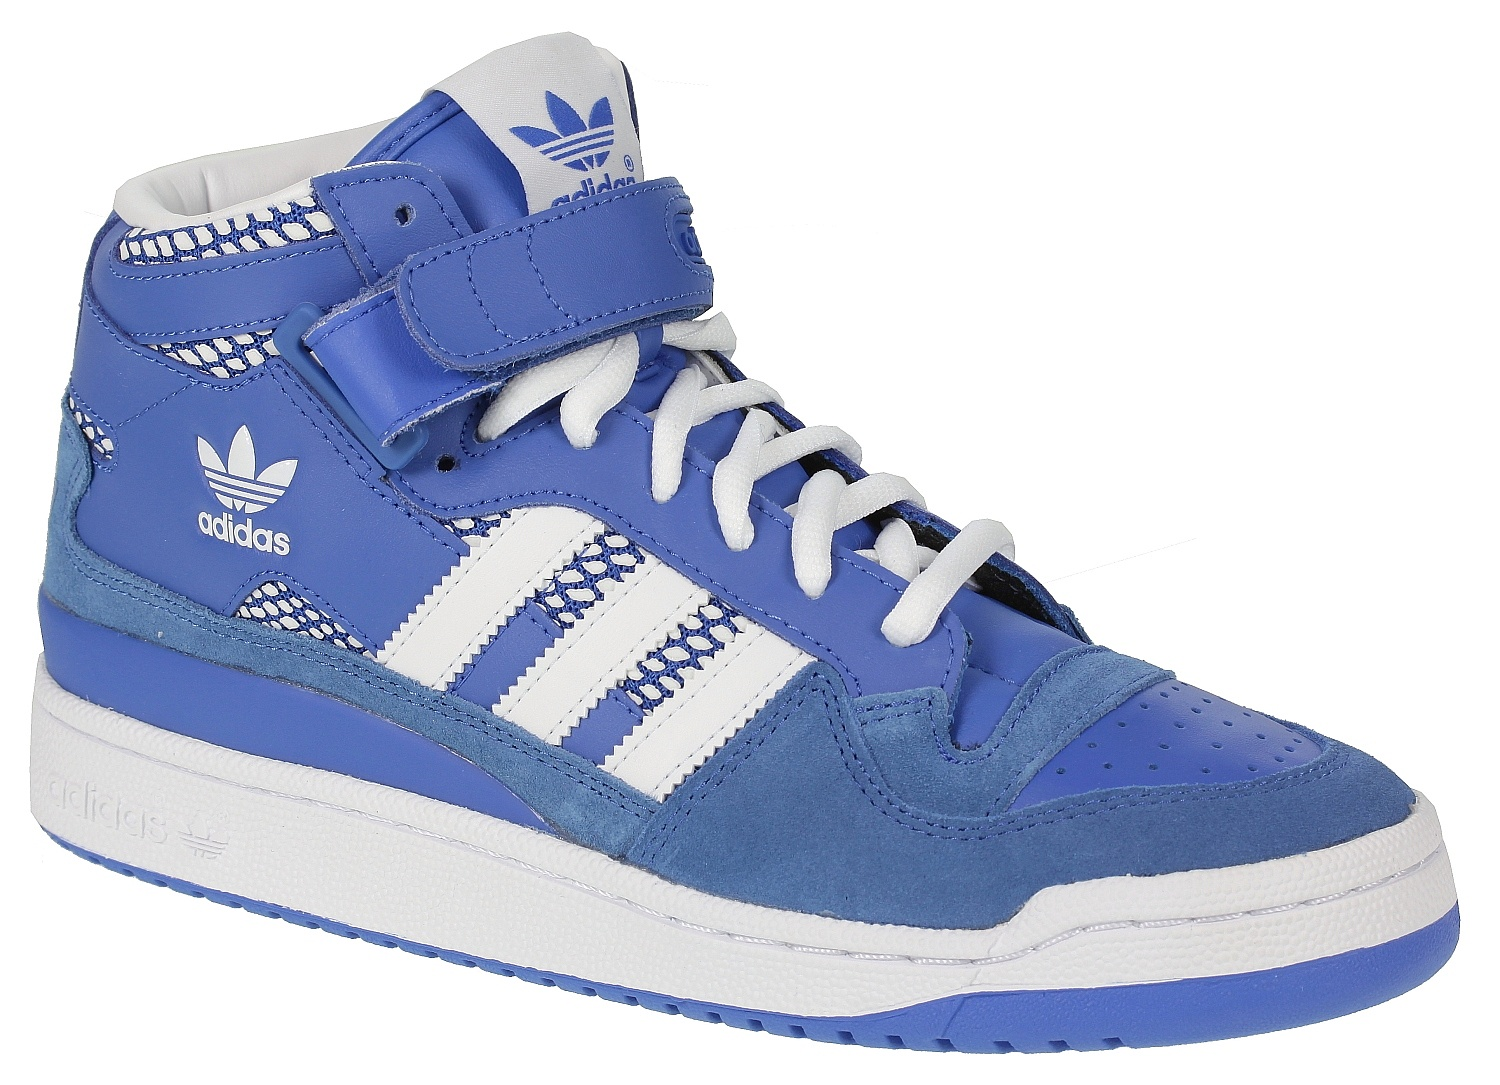 newest collection ec2b2 9acee 78a02 c0f9f top quality adidas forum mid rs rozm 47 1 3 60184 07230